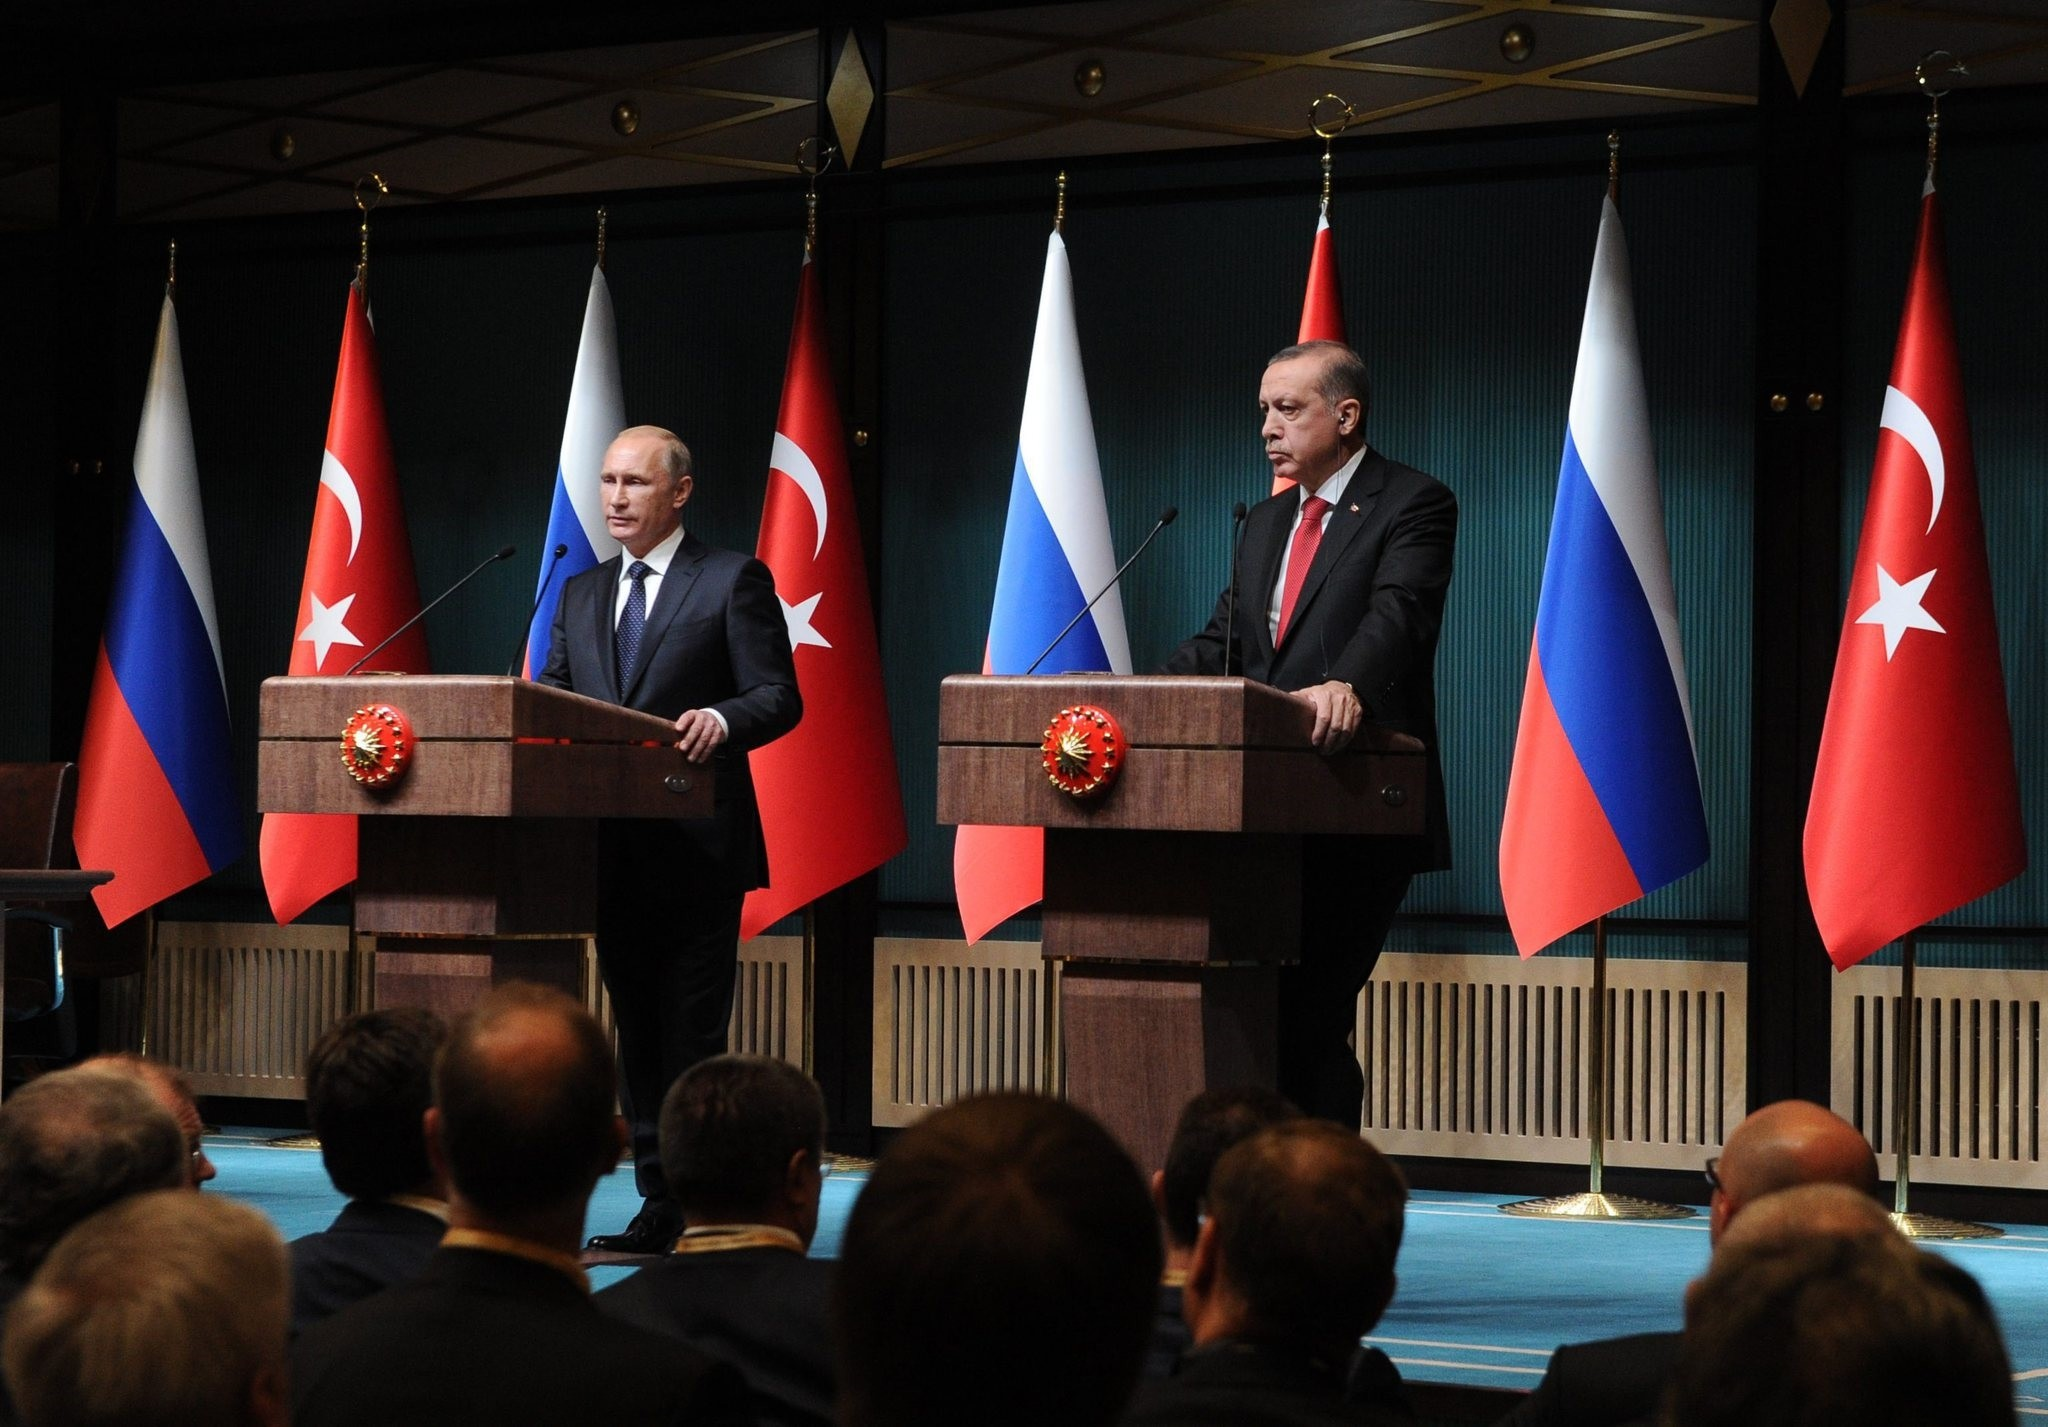 President Erdou011fan and his Russian counterpart Putin speak at a press conference after their meeting in Presidential Palace, Ankara, Dec. 1, 2014.